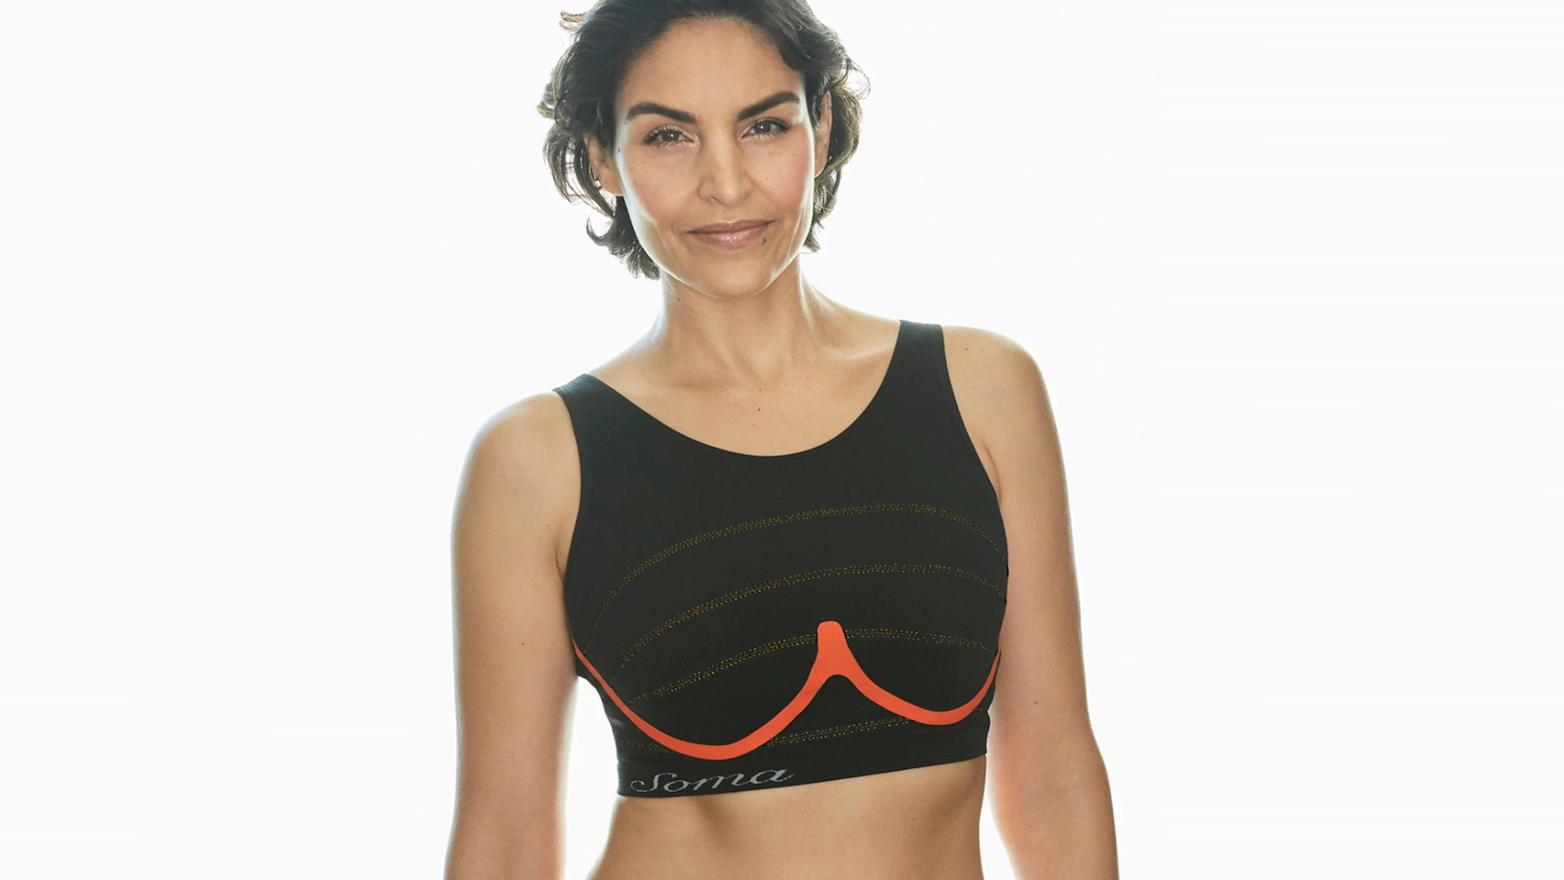 Soma's Smart Bra Will Help You Find Your Exact Cup Size